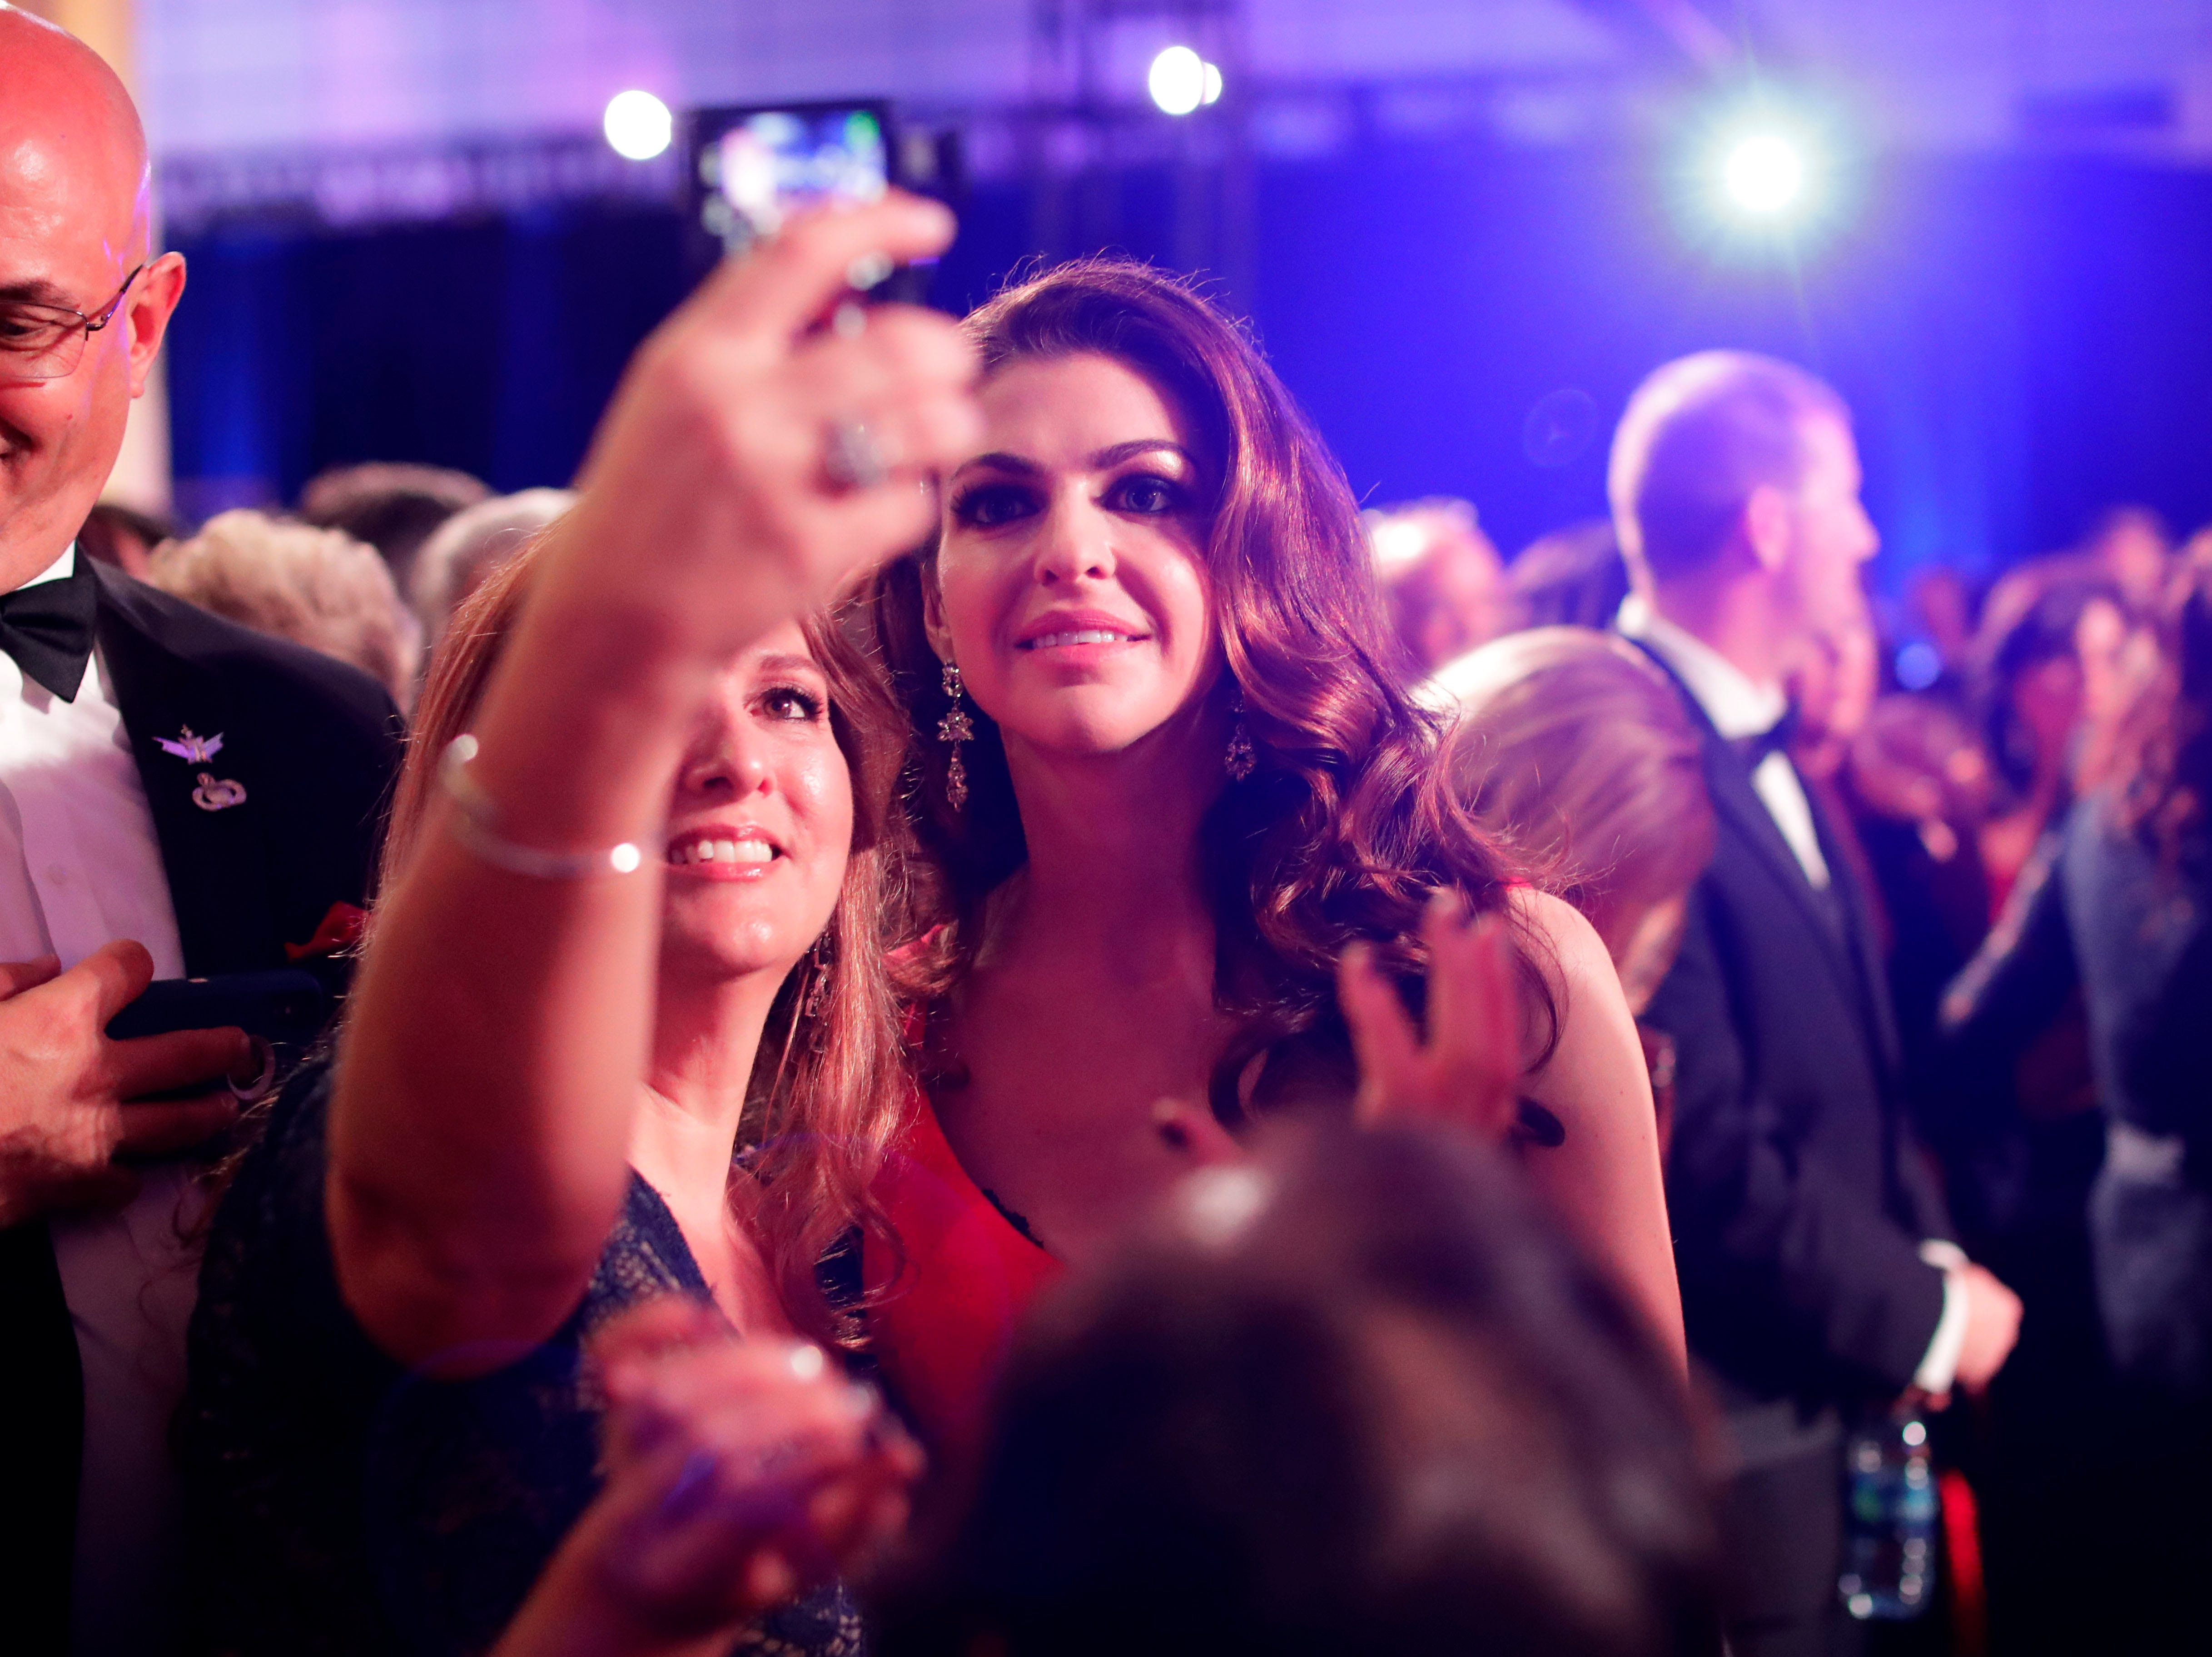 Hundreds of guests from all over Florida attend Florida's 46th Governor's Inaugural Ball at the Tucker Civic Center, Tuesday, Jan. 8, 2019. First lady, Casey DeSantis poses for a selfie with a guest.